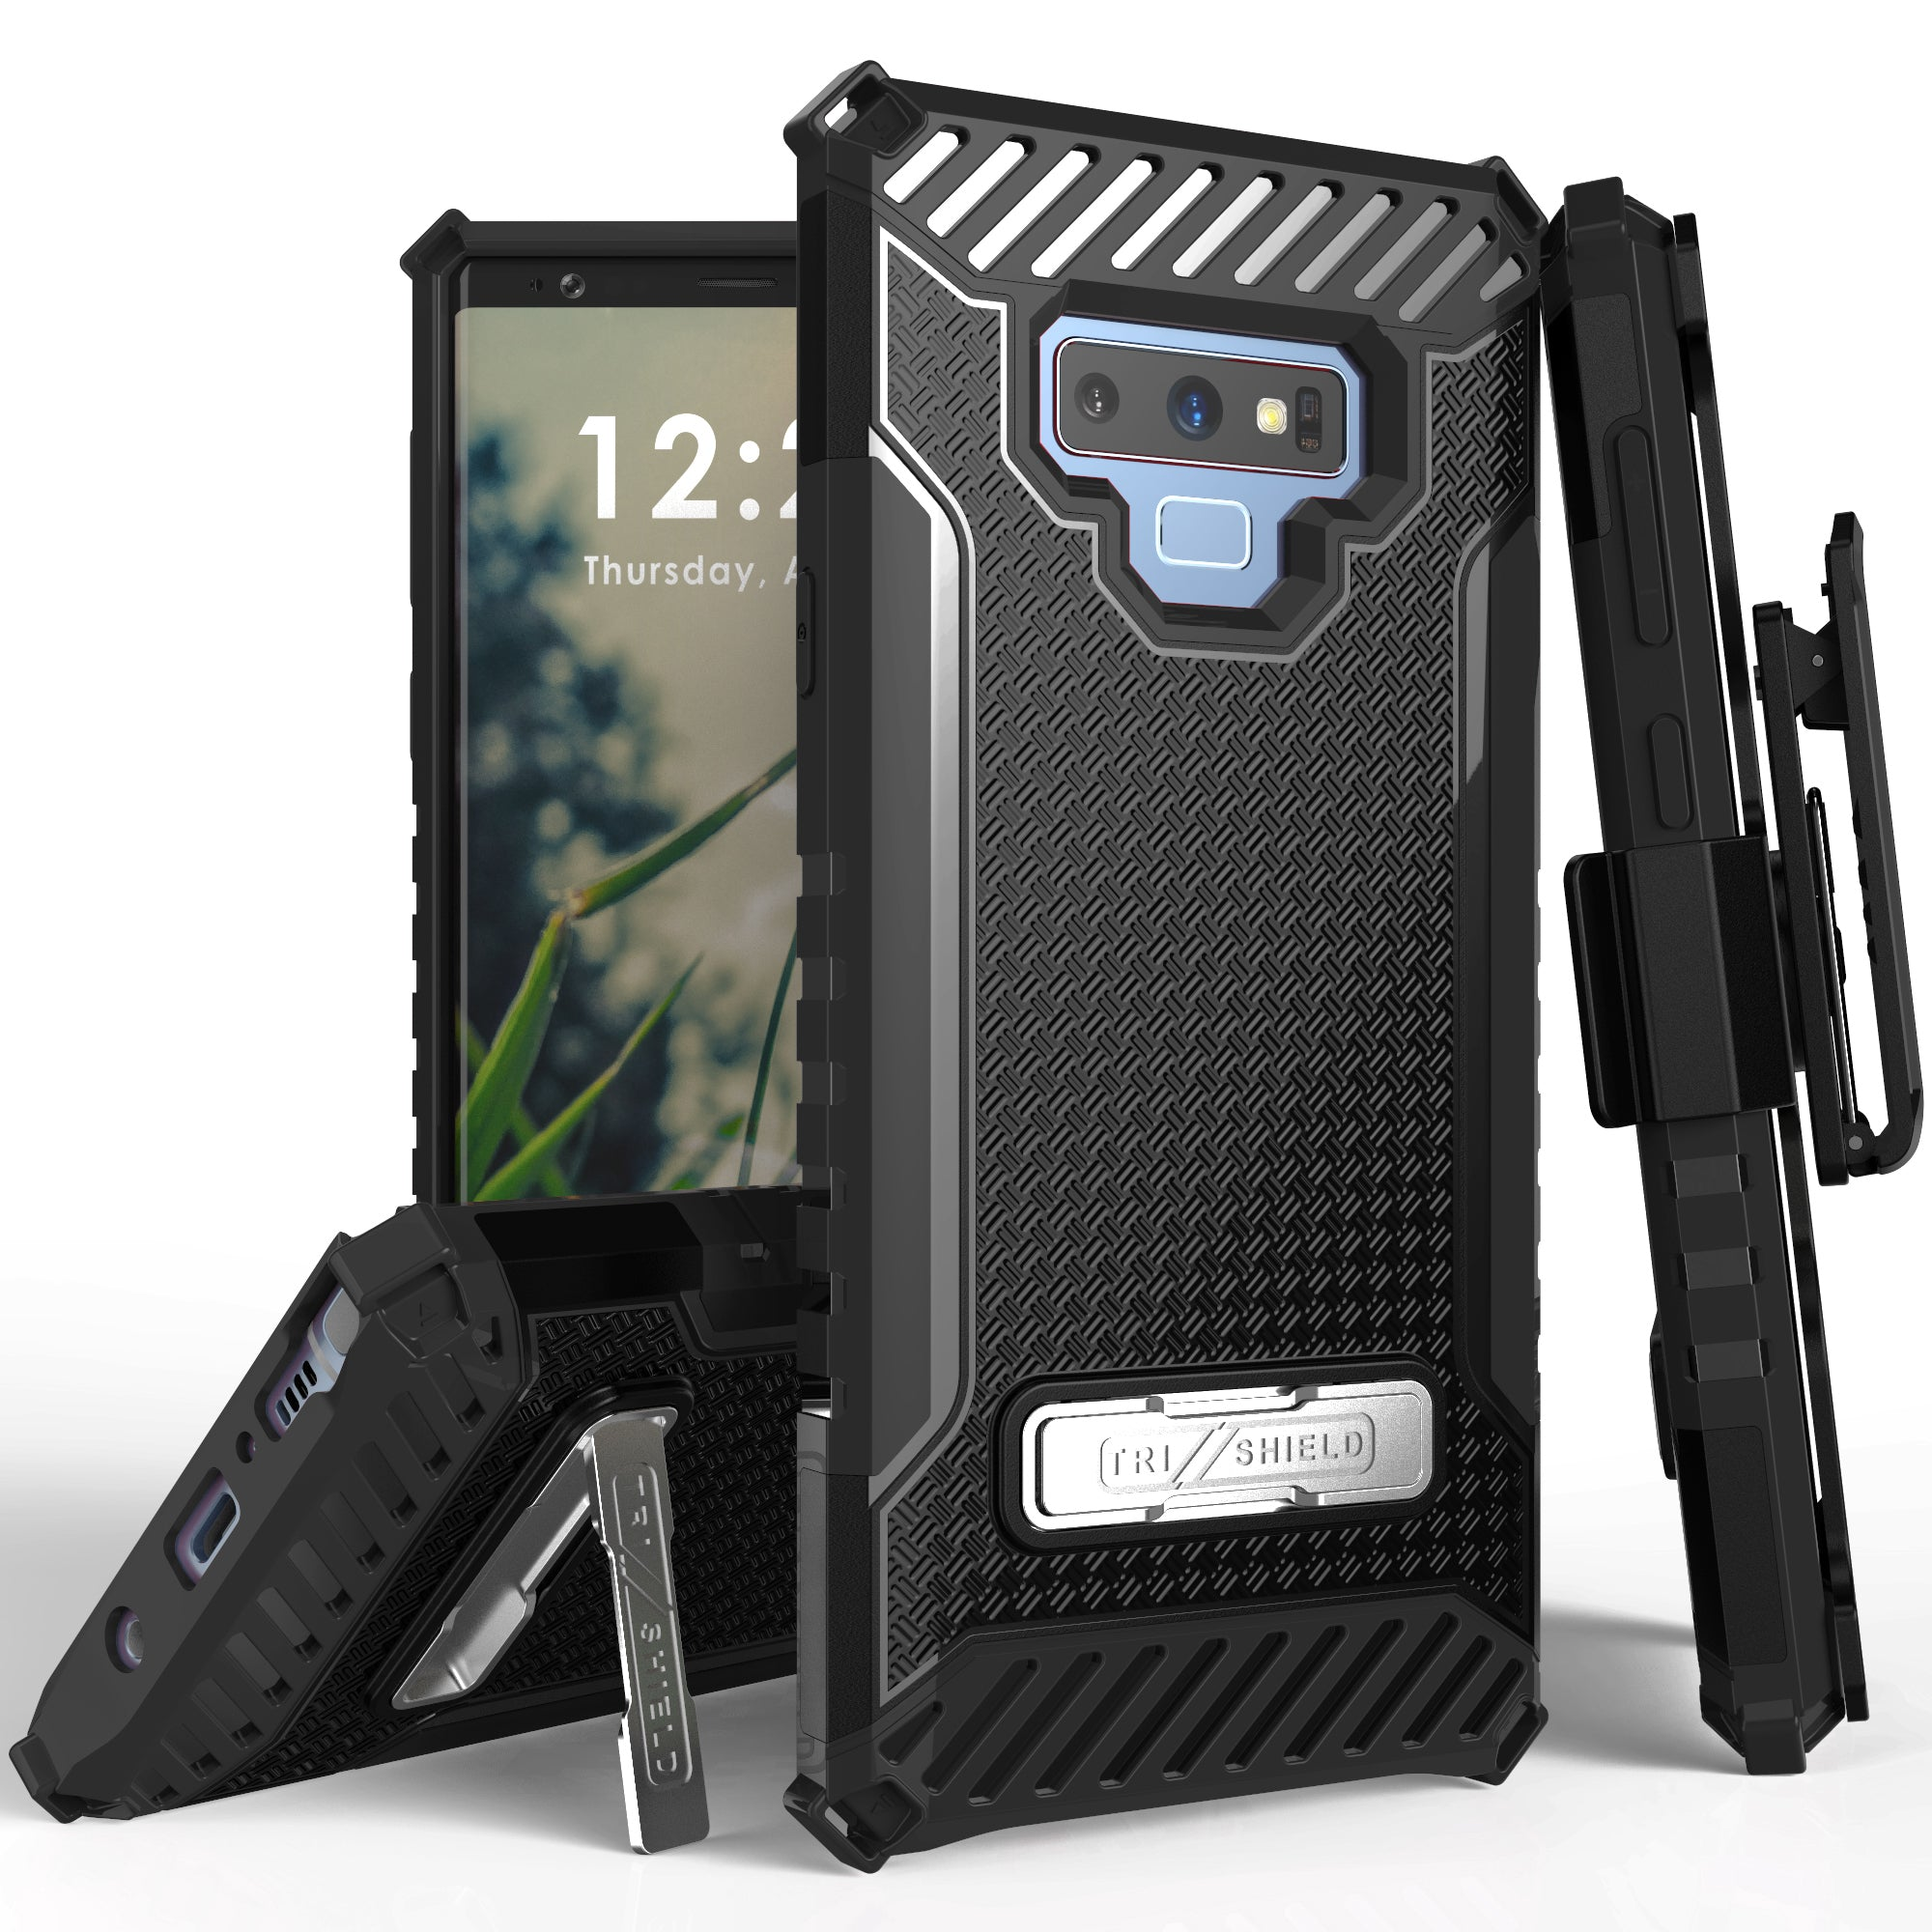 100% authentic b2739 3522b Tri Shield For Samsung Galaxy Note 9 Black/Black TPU Case,Kickstand, With  Belt Clip Holster,